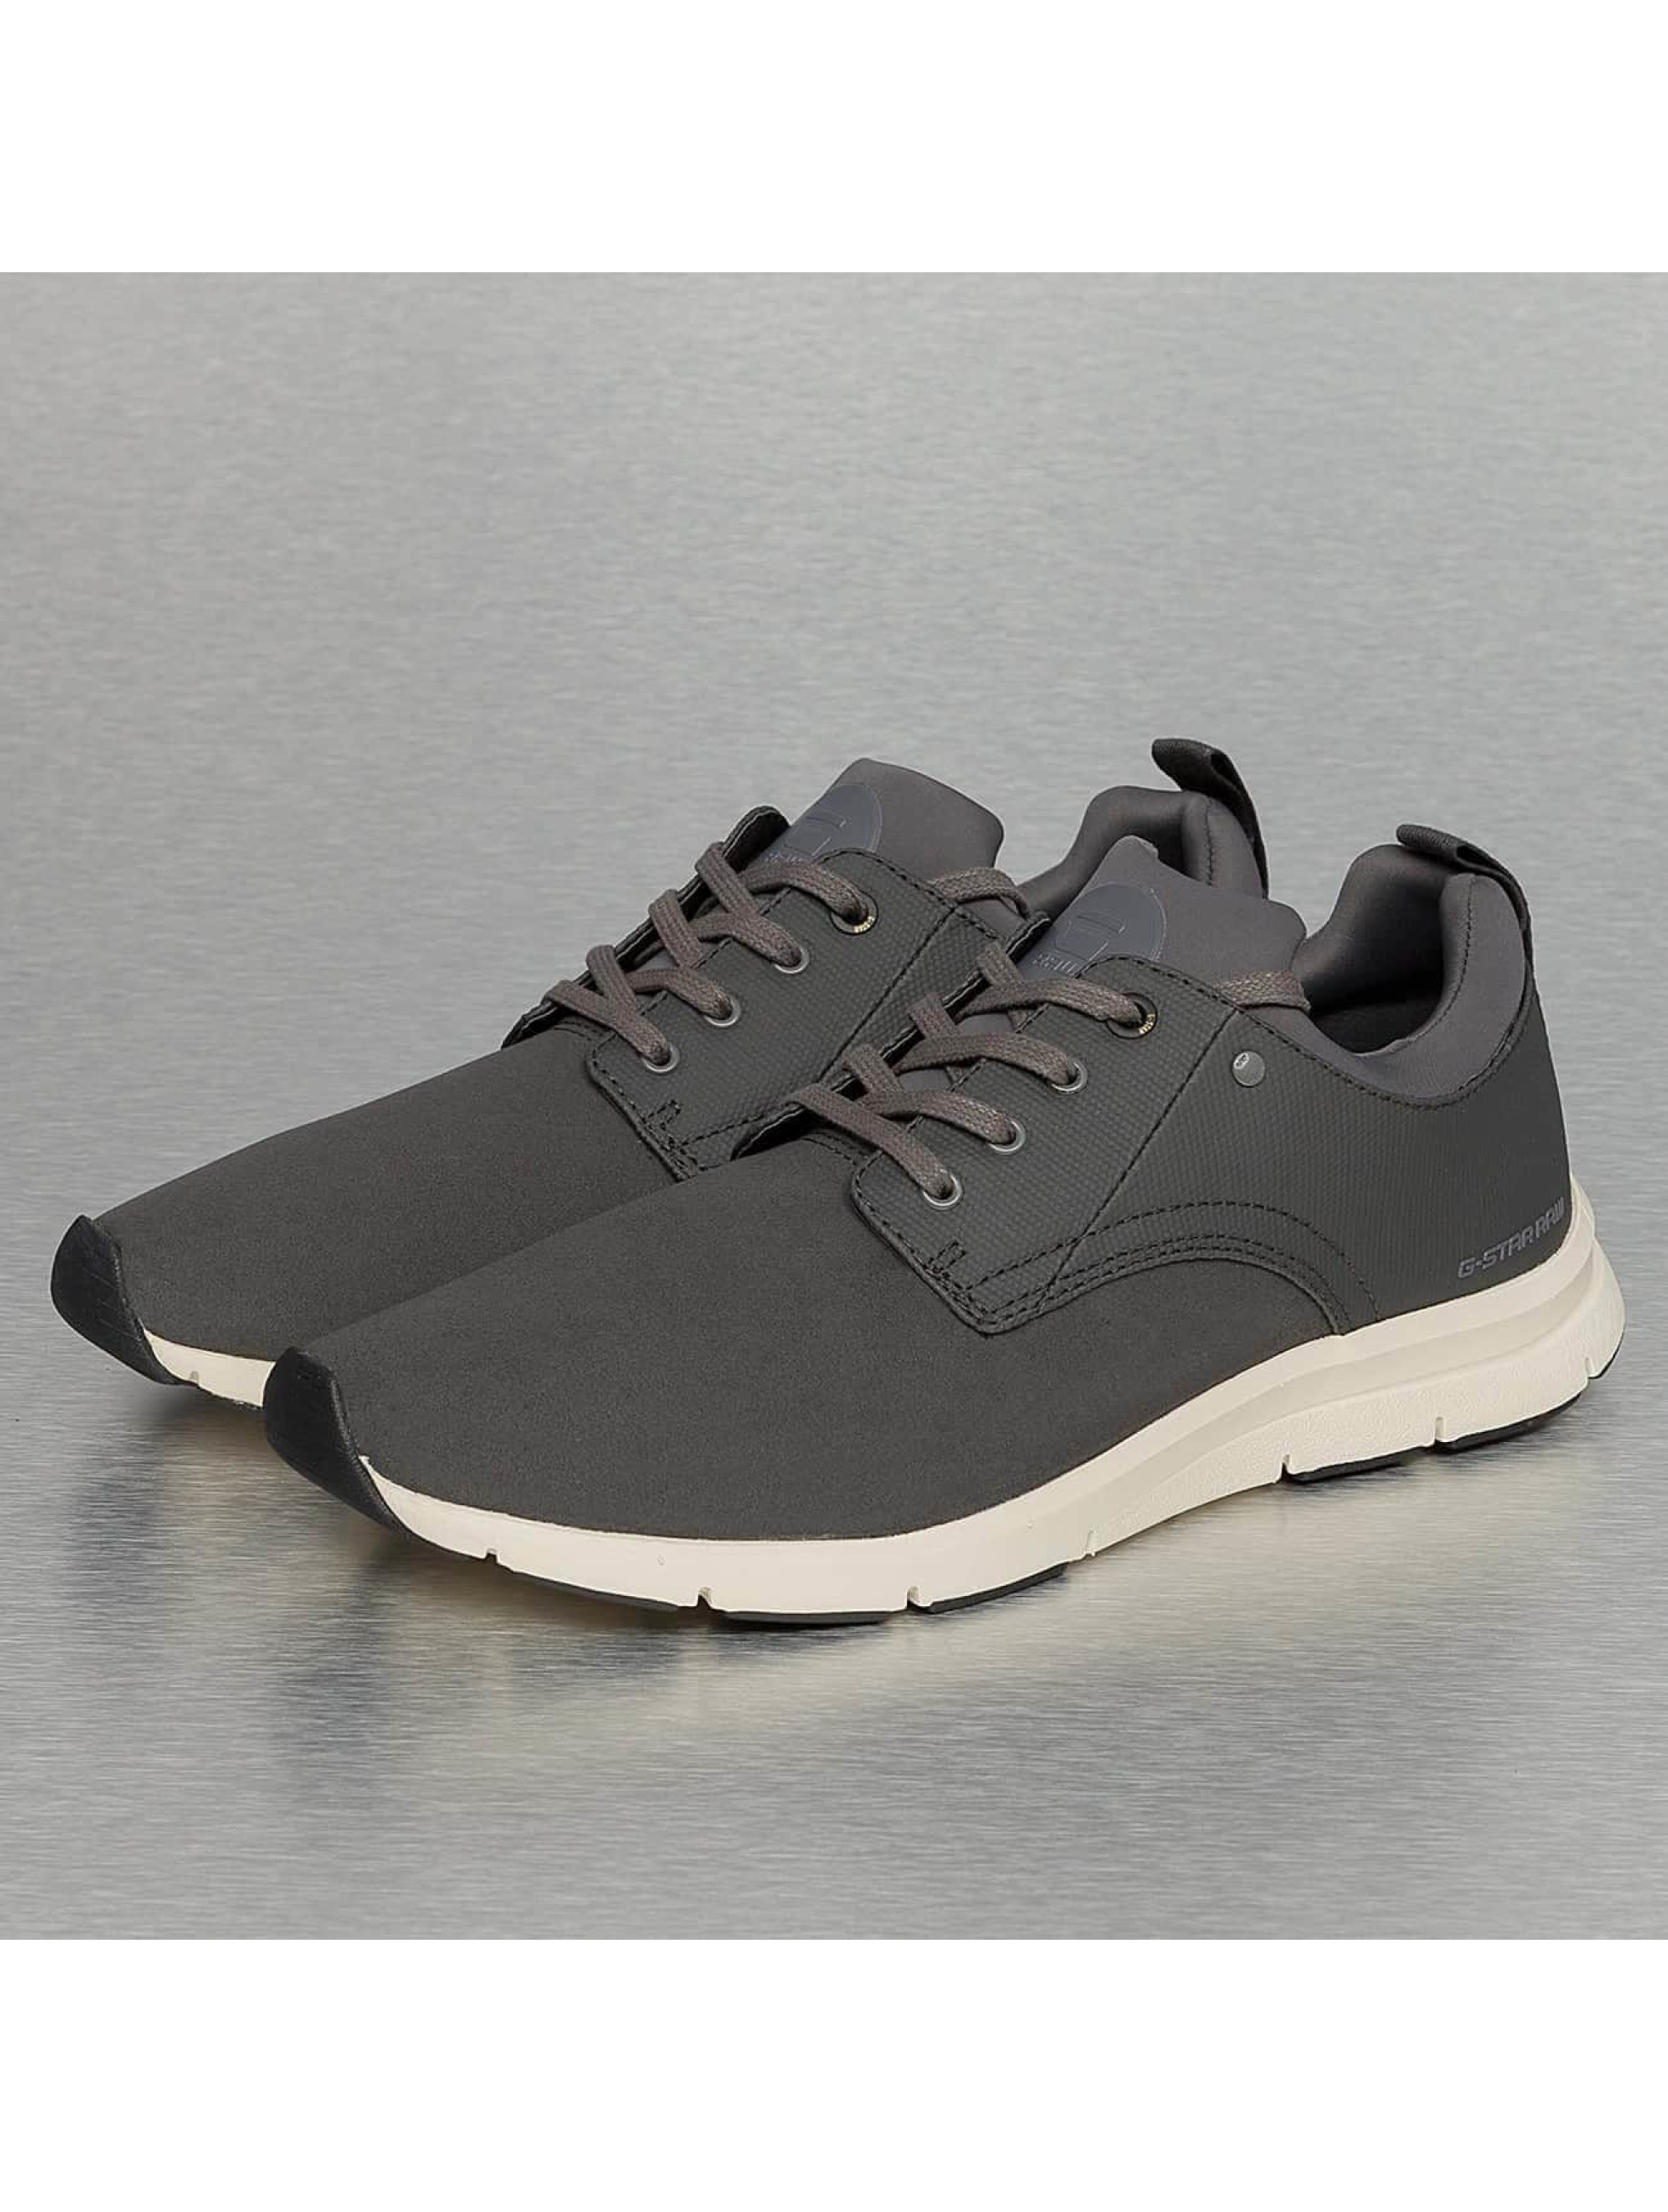 G-Star Sneakers Aver szary